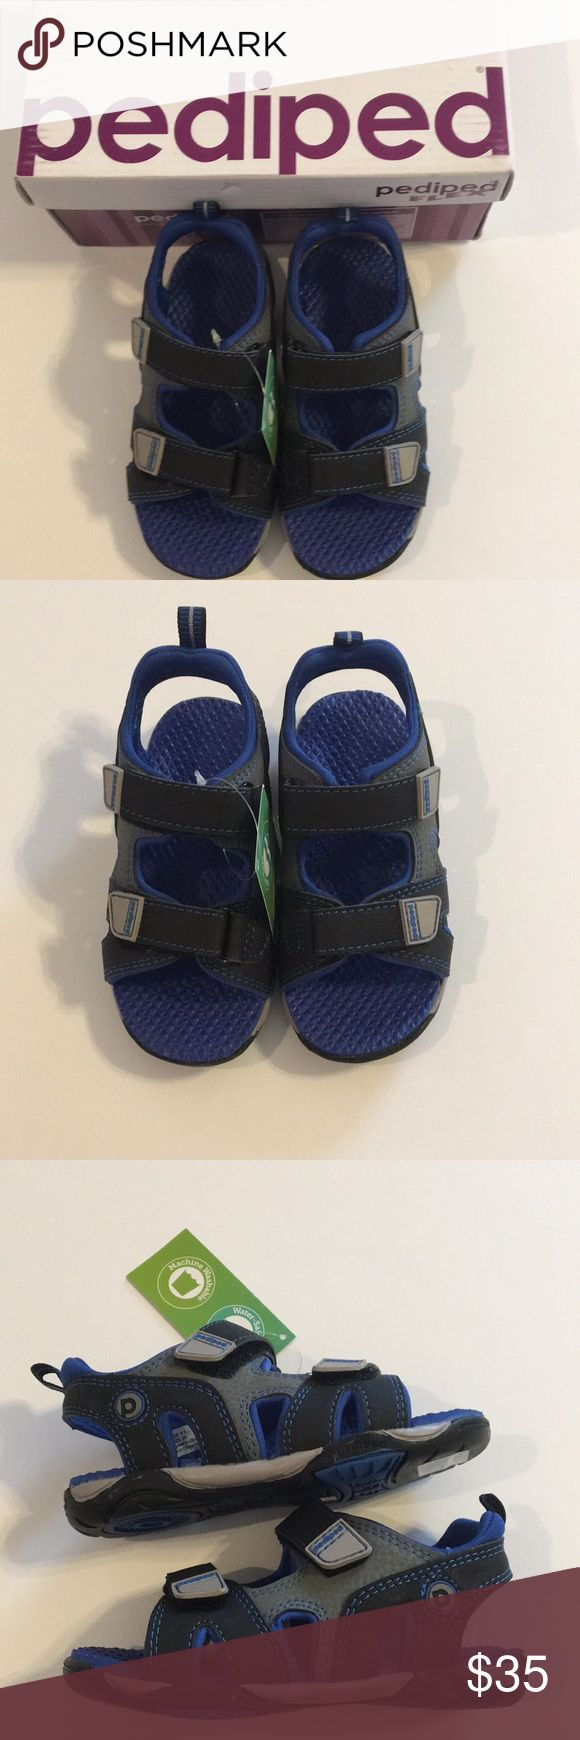 ⬇️NWT Pediped Navigator Sandals   NWT Toddler Boy Pediped Navigator Sandals.  These are waterproof sandals.  Perfect for the beach or pool.  In original box.  Blue, black and gray.  Pet free smoke free home. pediped Shoes Water Shoes